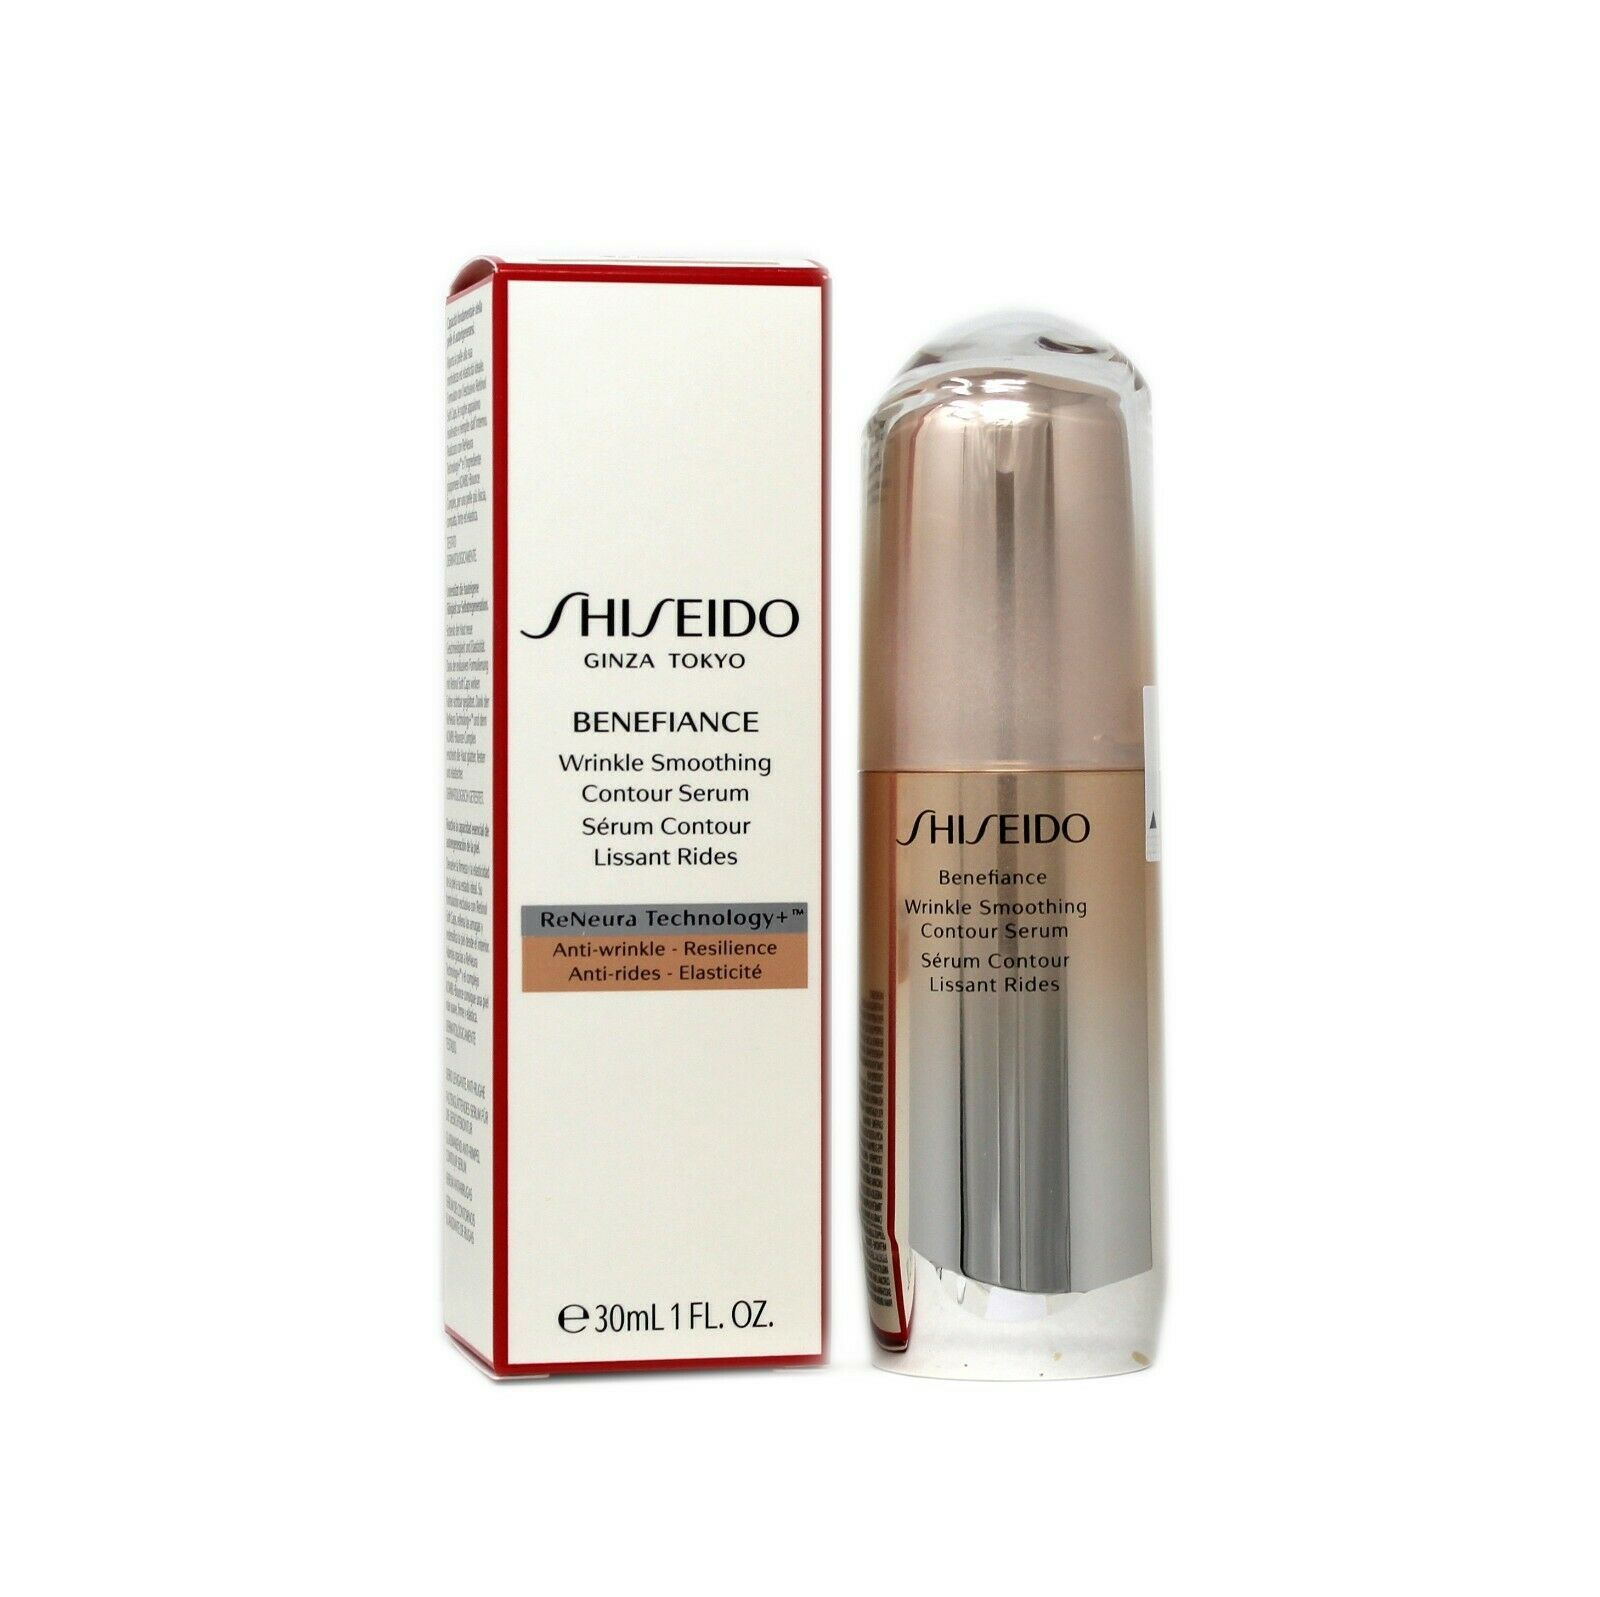 Primary image for SHISEIDO BENEFIANCE WRINKLE SMOOTHING CONTOUR SERUM 30 ML/1 FL.OZ. NIB SH15580